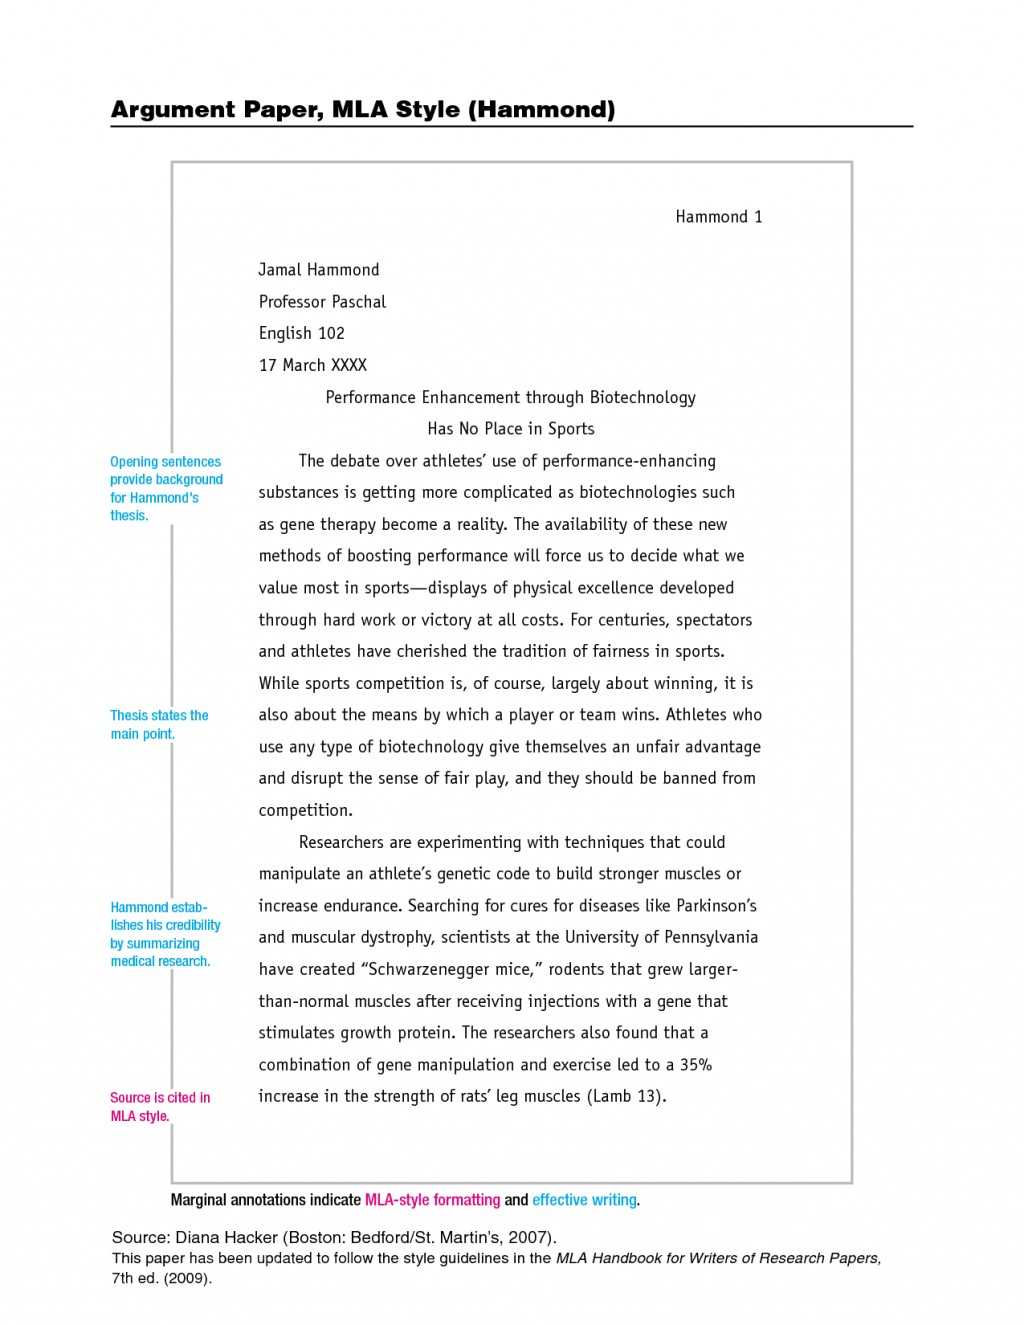 024 Research Paper First Page Mla Format Unique Style For The Of A Title Large